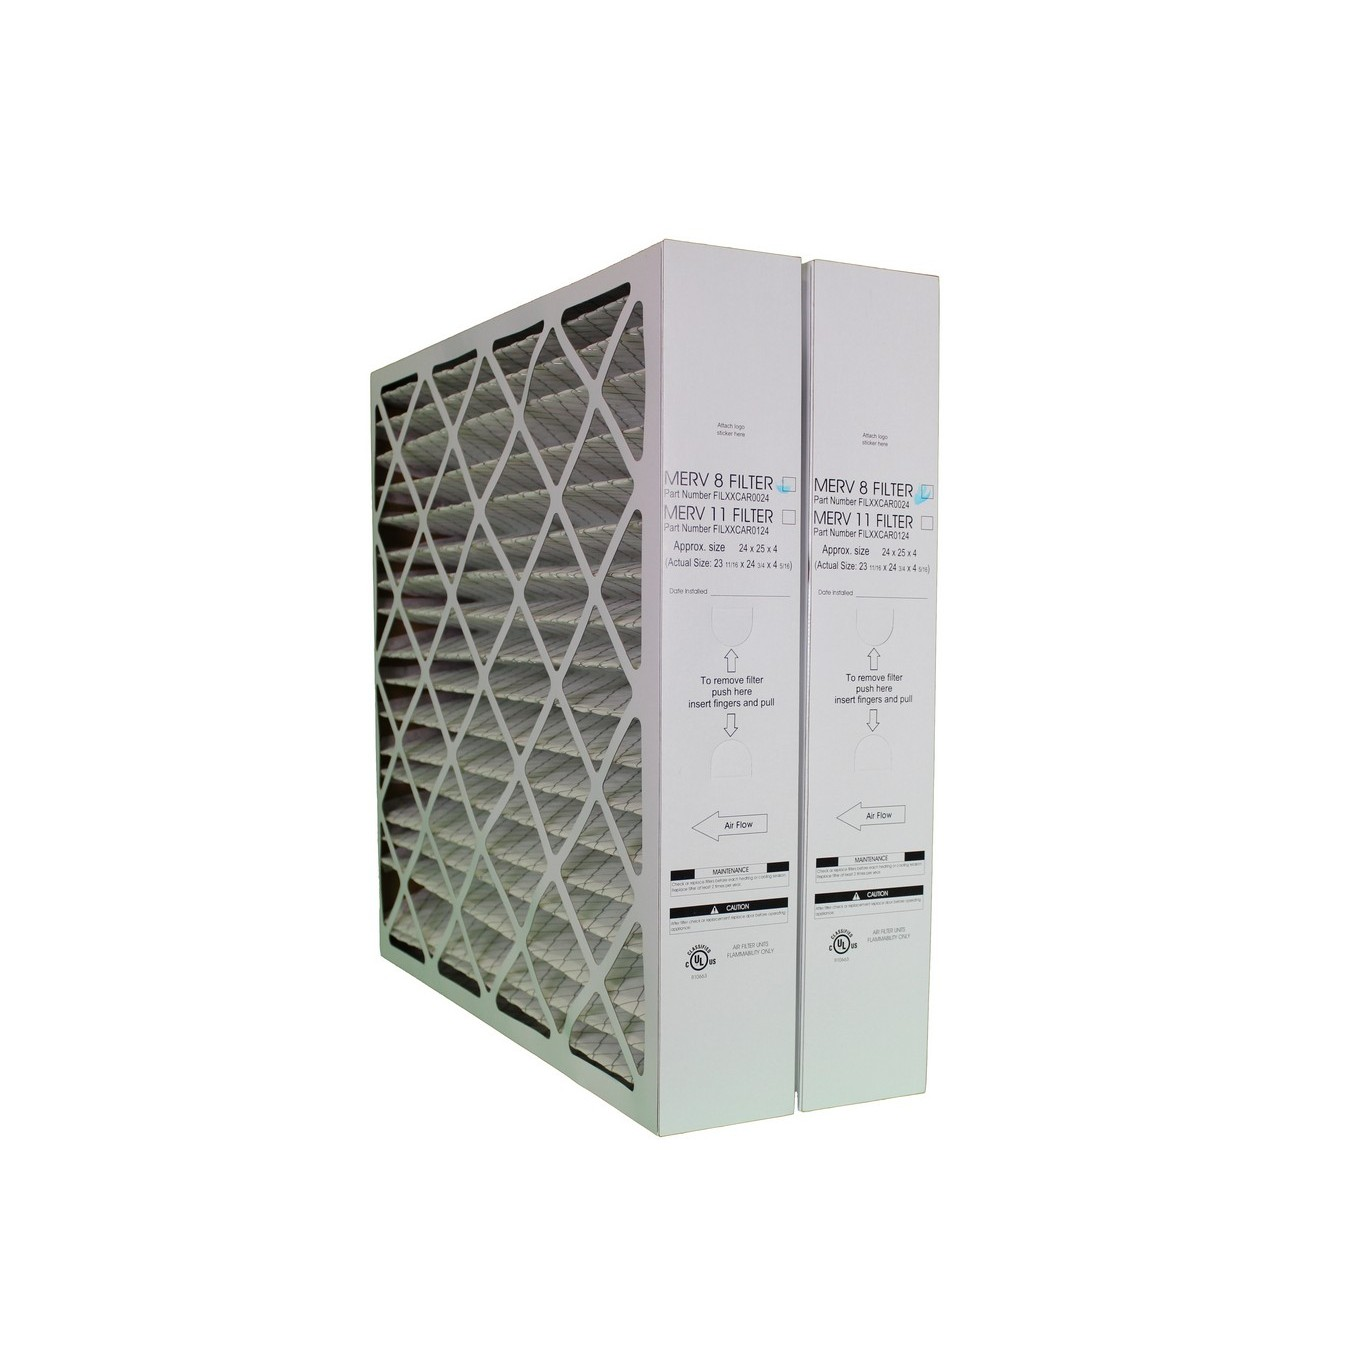 Bryant Furnace: Filter Size For Bryant Furnace